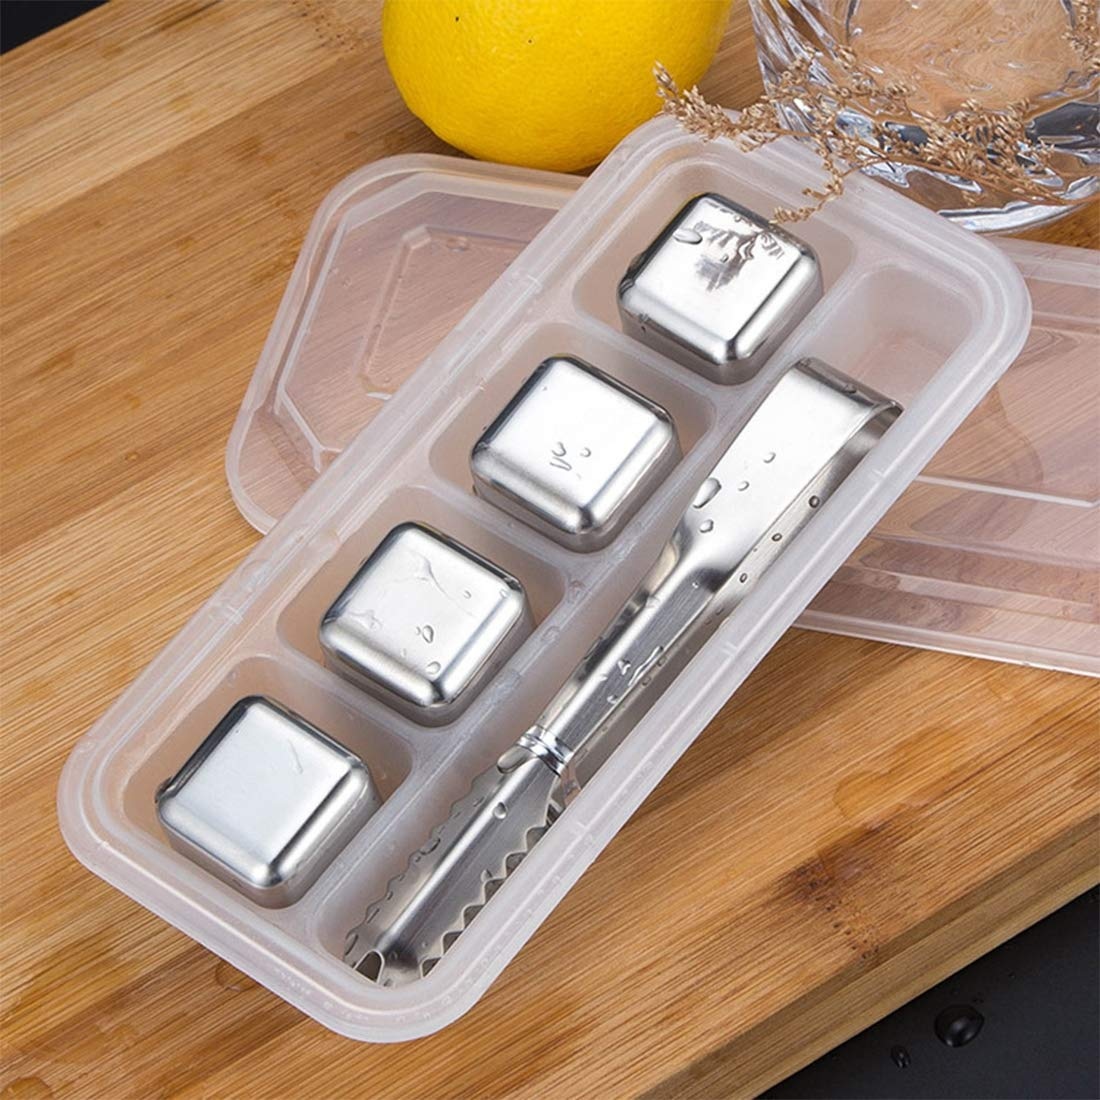 SONGYANG Ice Cube Reusable Stainless Steel Ice Cubes Set Drinks Stones with Tongs for Cooling Whiskey, Vodka, Wine, Beer, Beverage,All Drinks,B by SONGYANG